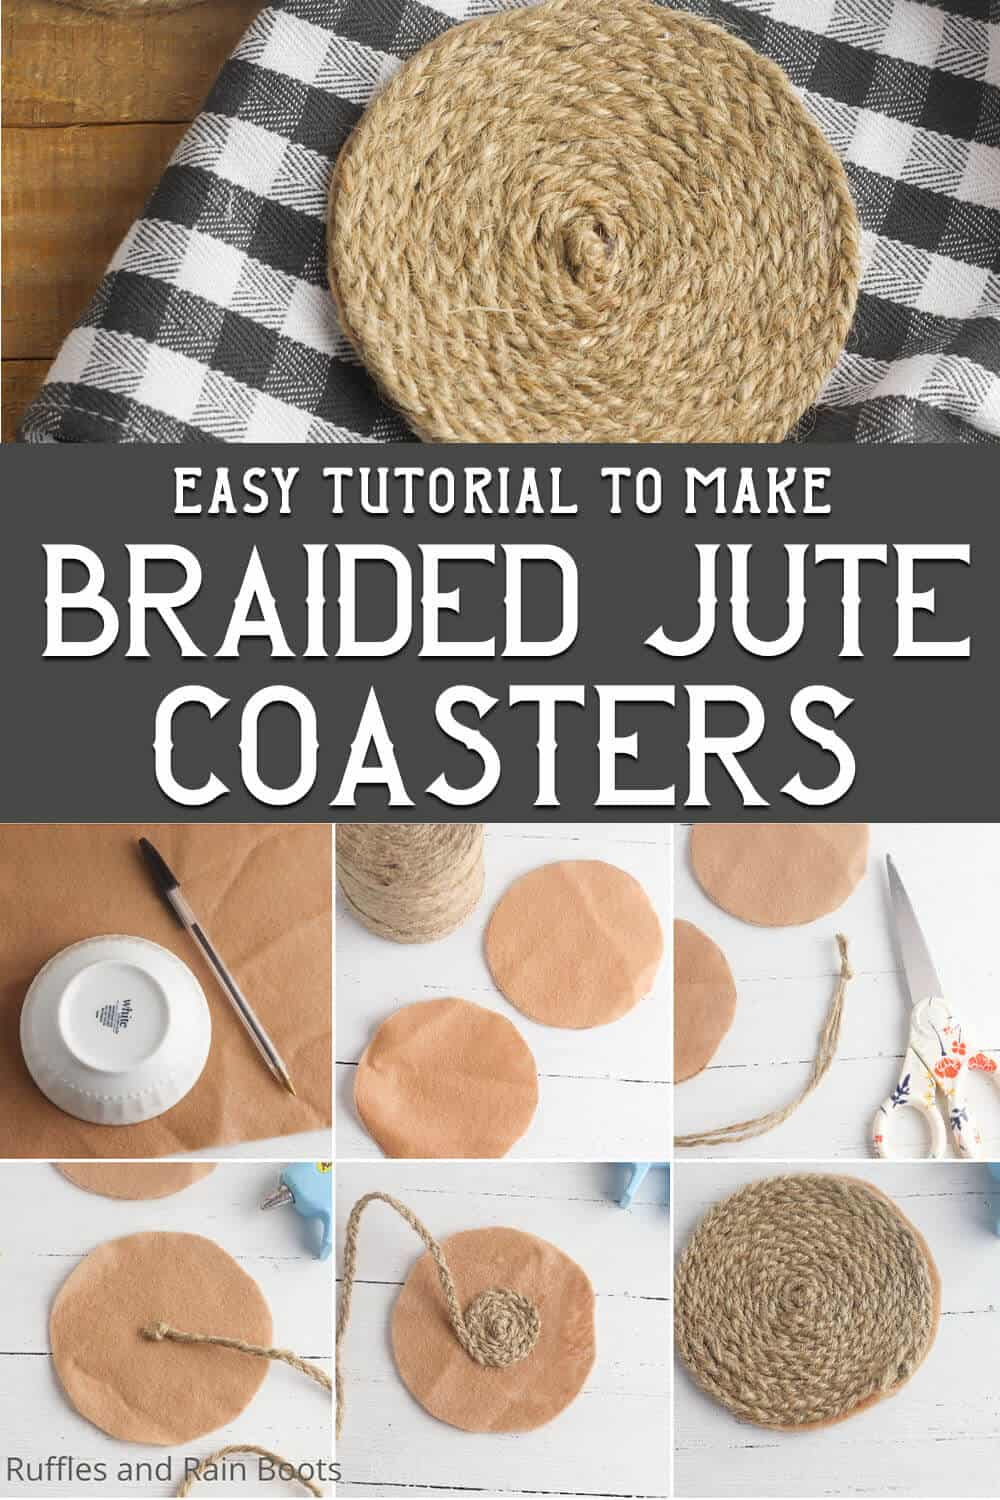 photo collage of easy farmhouse craft idea of twine coasters with text which reads easy tutorial to make braided jute coasters